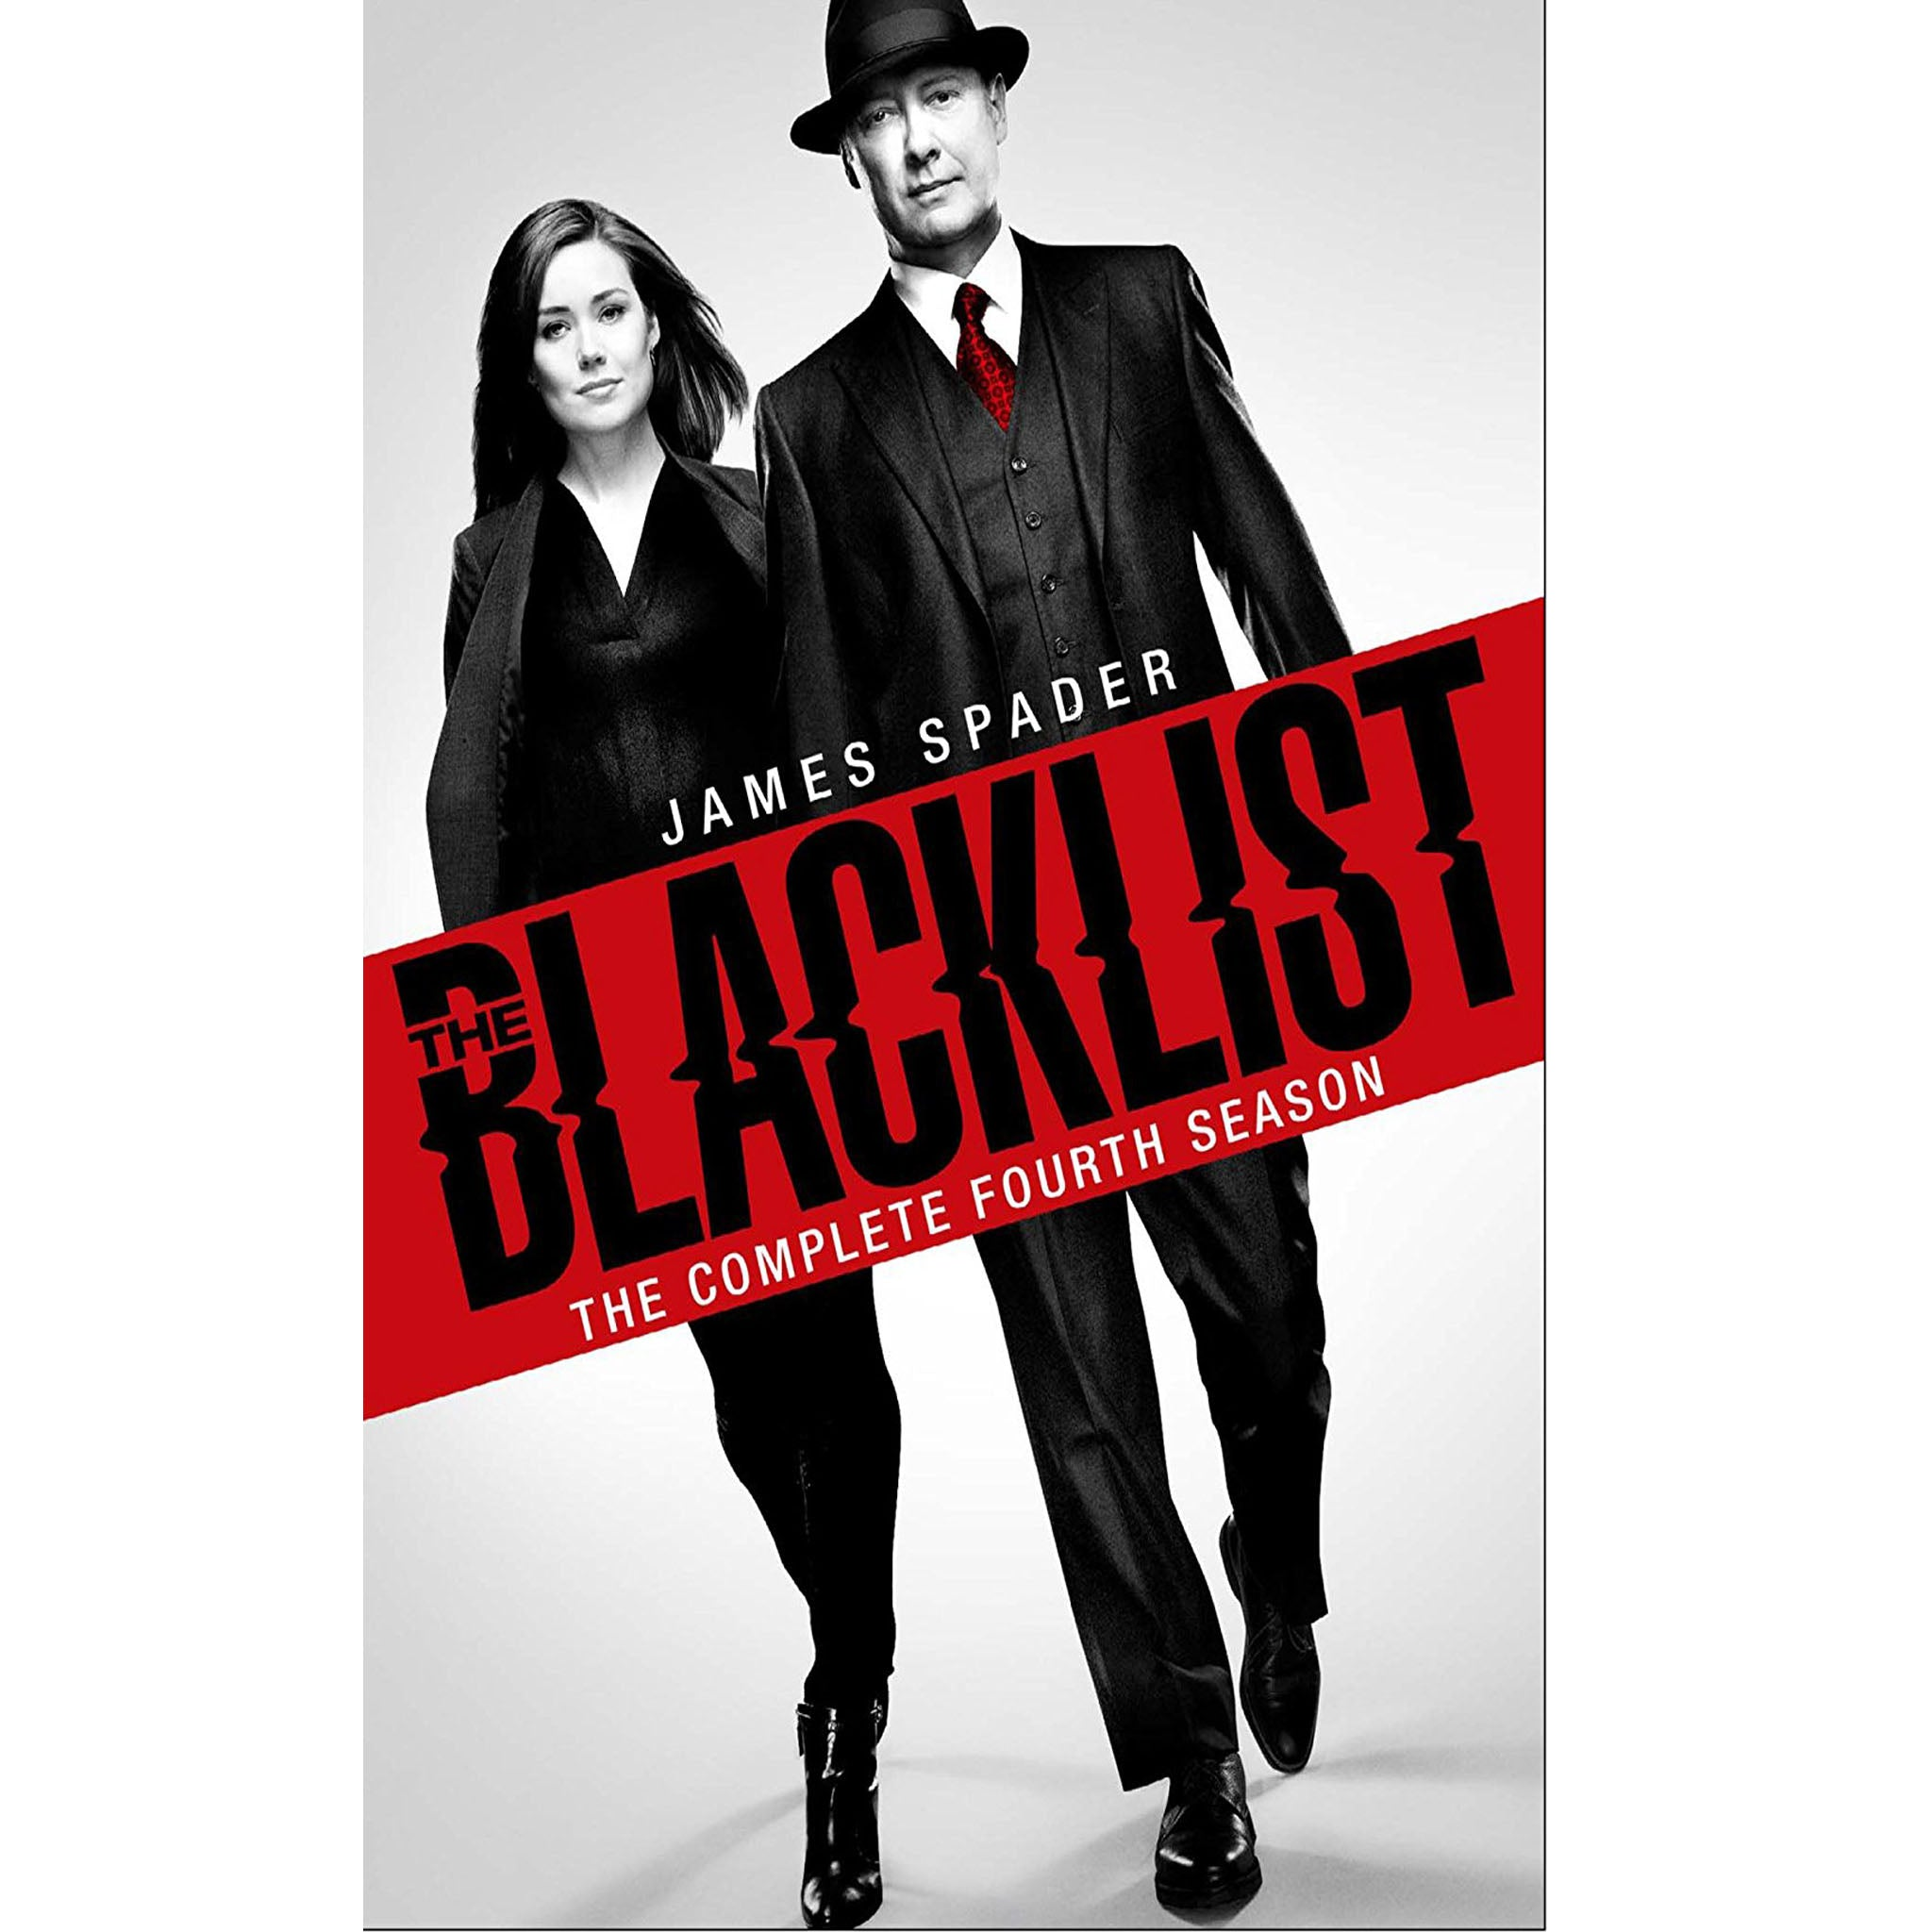 The Blacklist Season 4 (DVD) - DVDsHQ